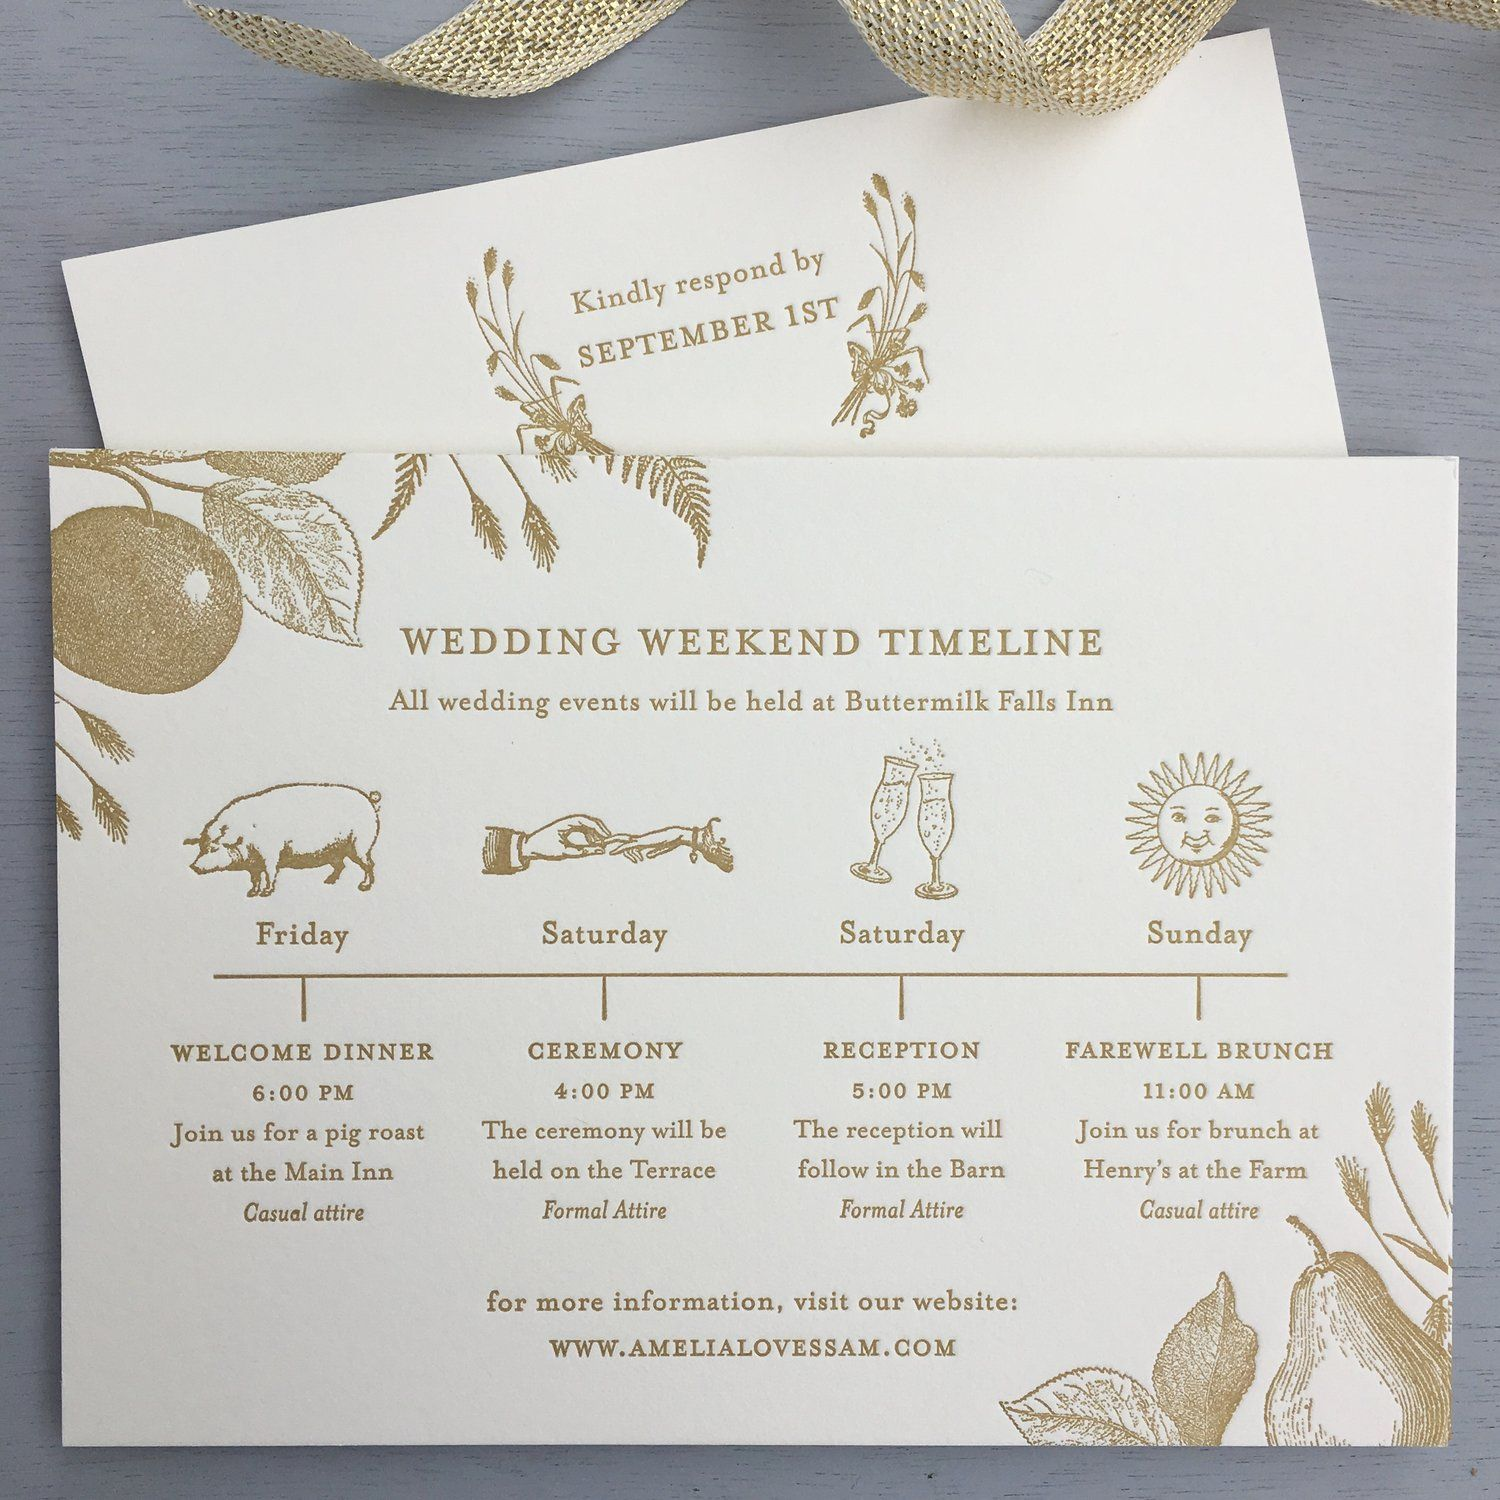 Our New Autumn Invitation Design In Matte Gold Ink We Love This Sweet Timeline Of Events With Wedding Invitations Wedding Stationery Wedding Weekend Itinerary